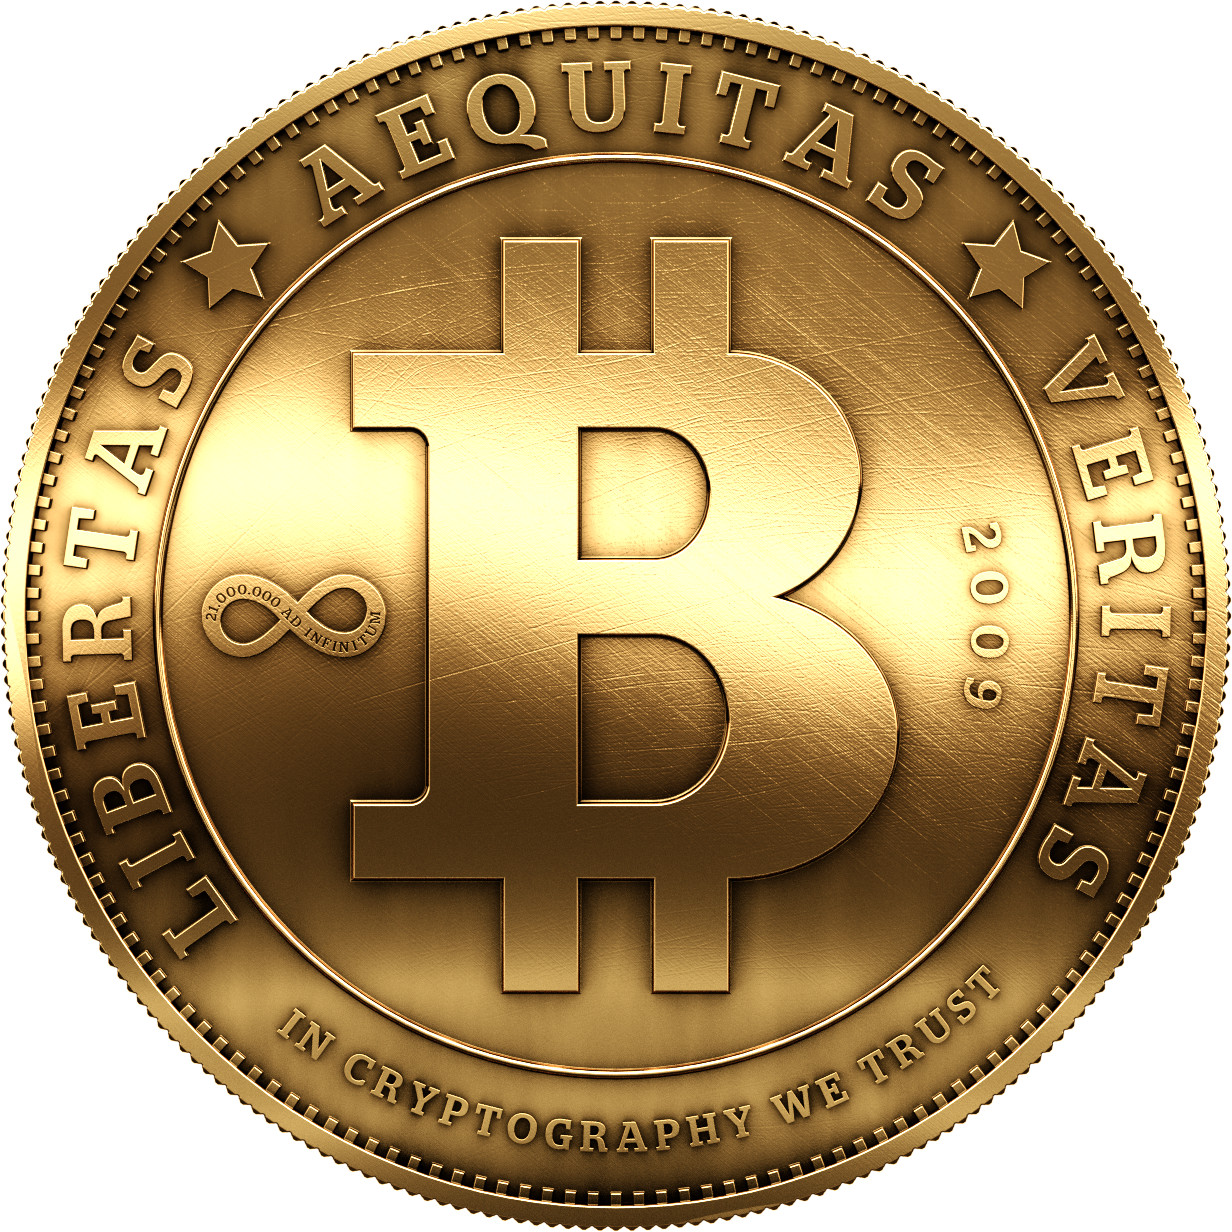 BUY/SELL BITCOINS - 08038606260